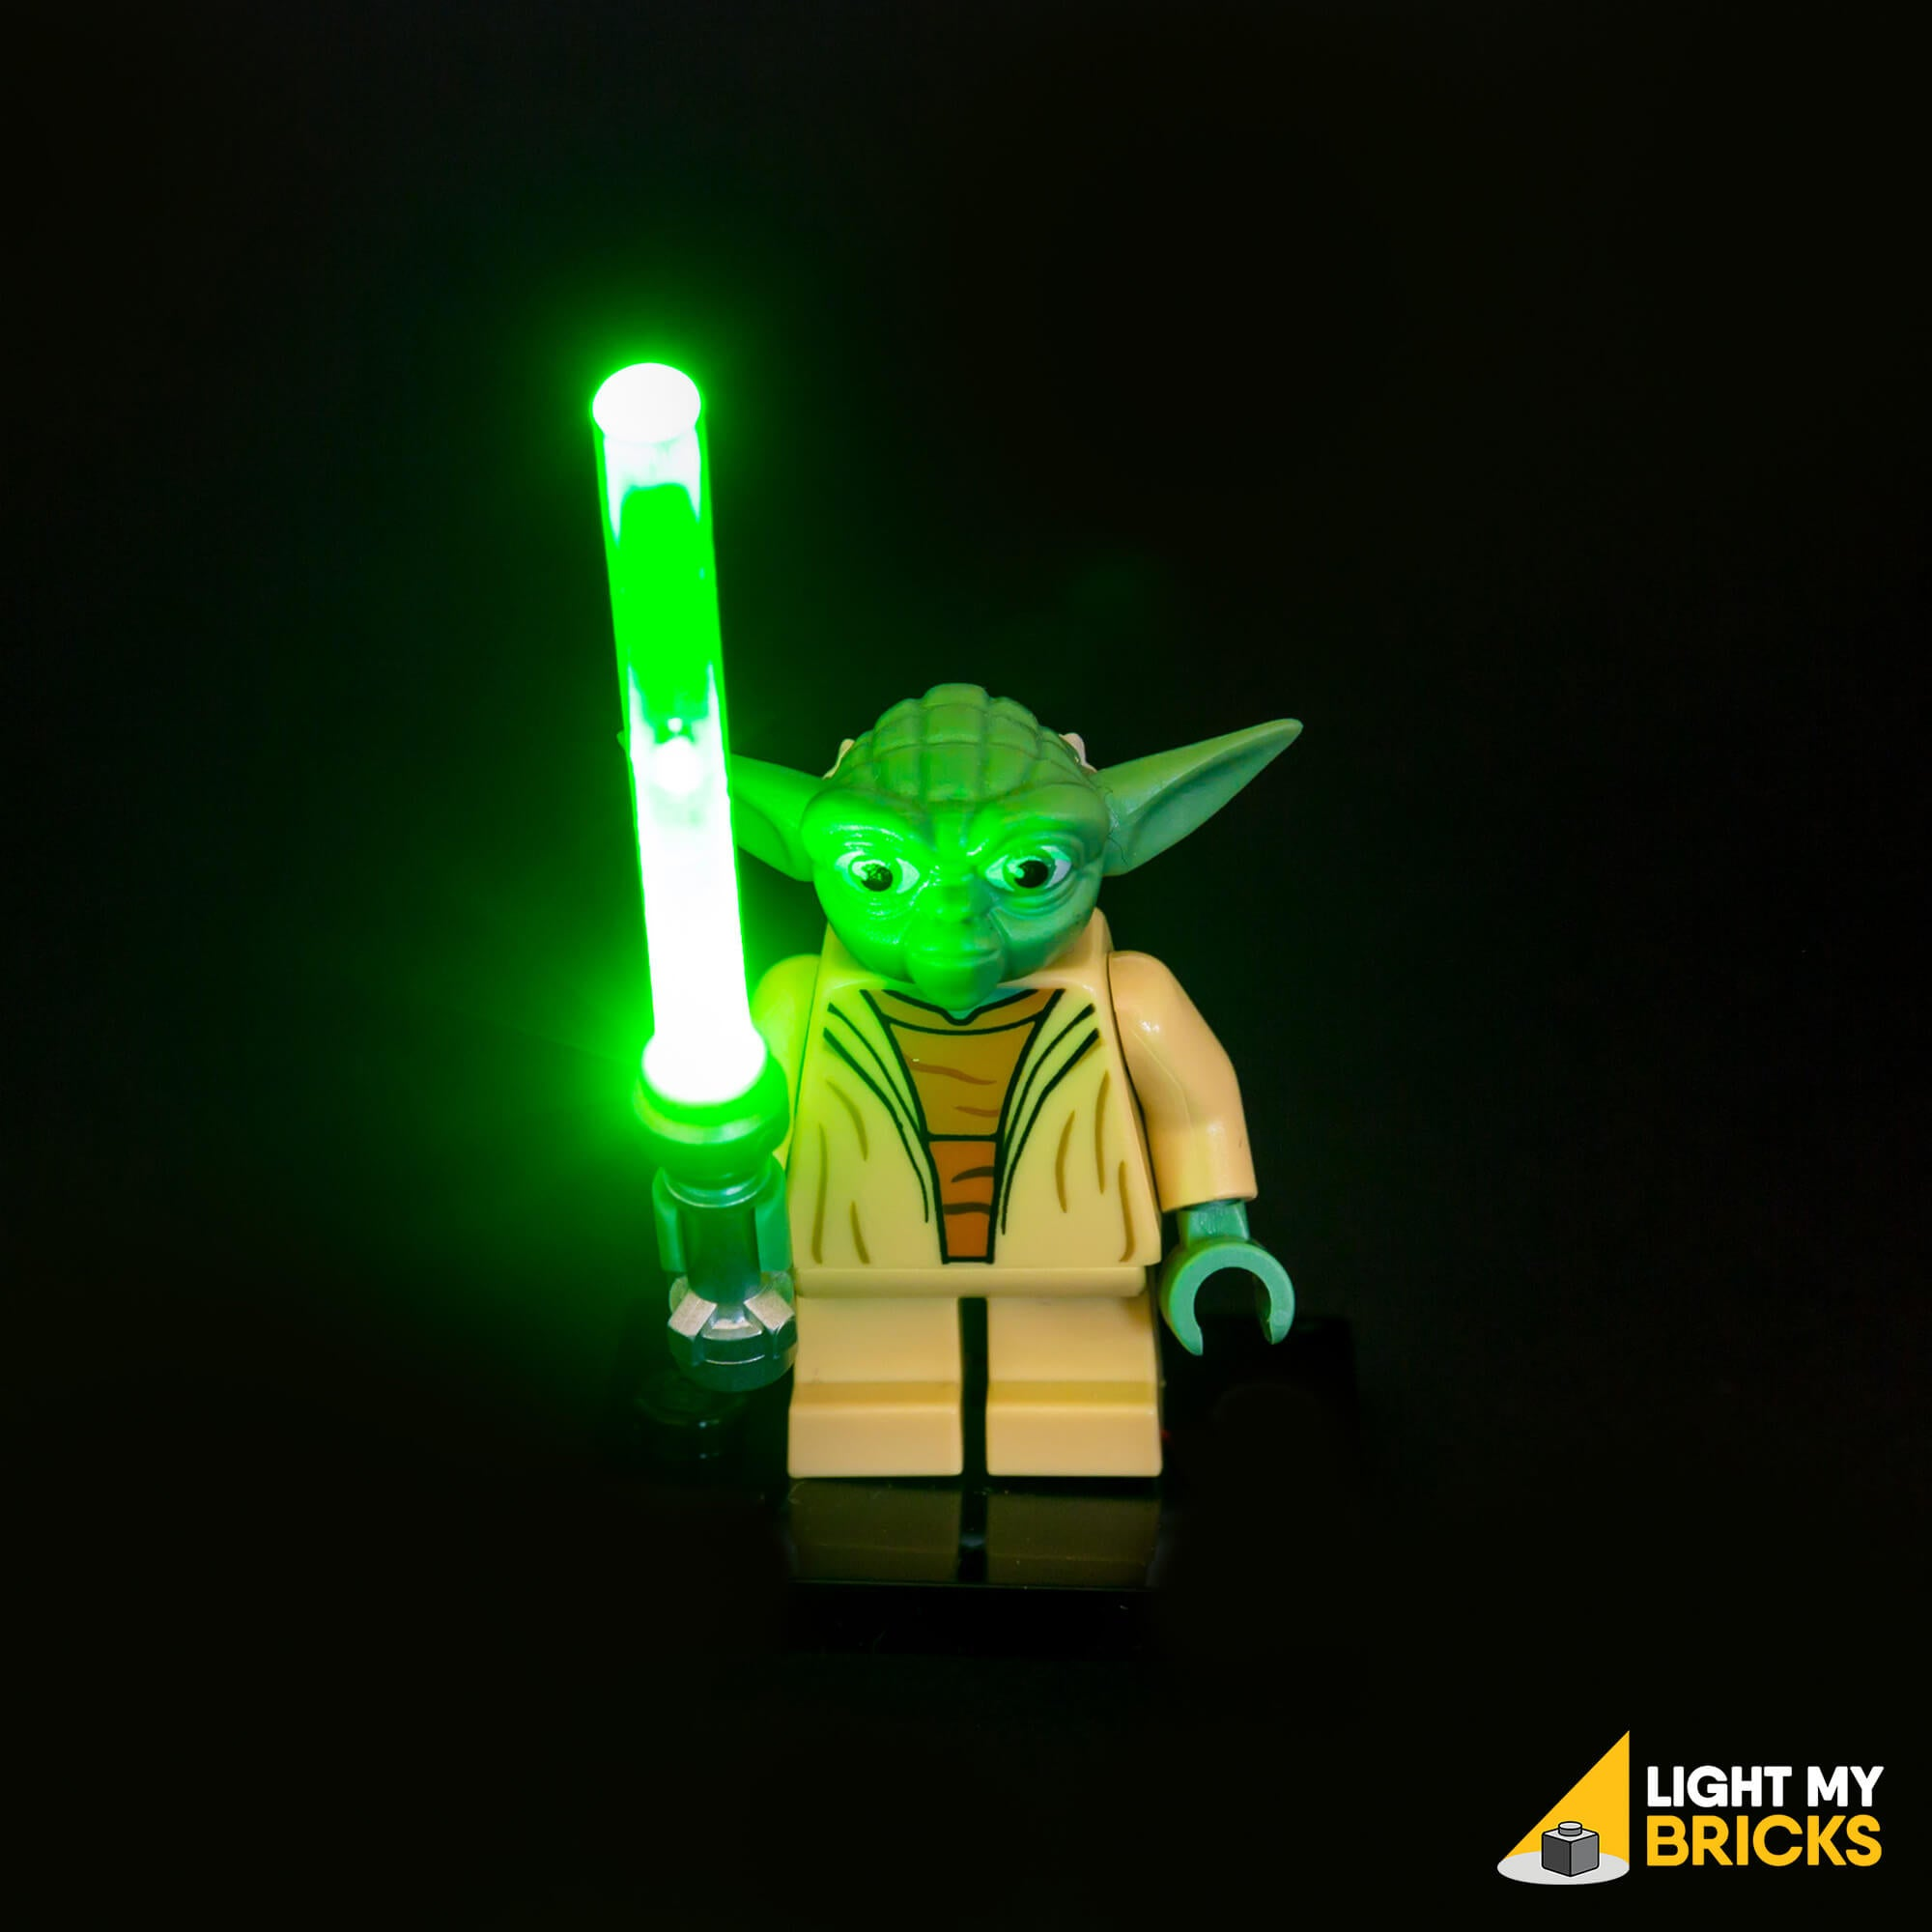 Light My Bricks LEGO Lighting Component - LEGO Lightsaber Green Activated